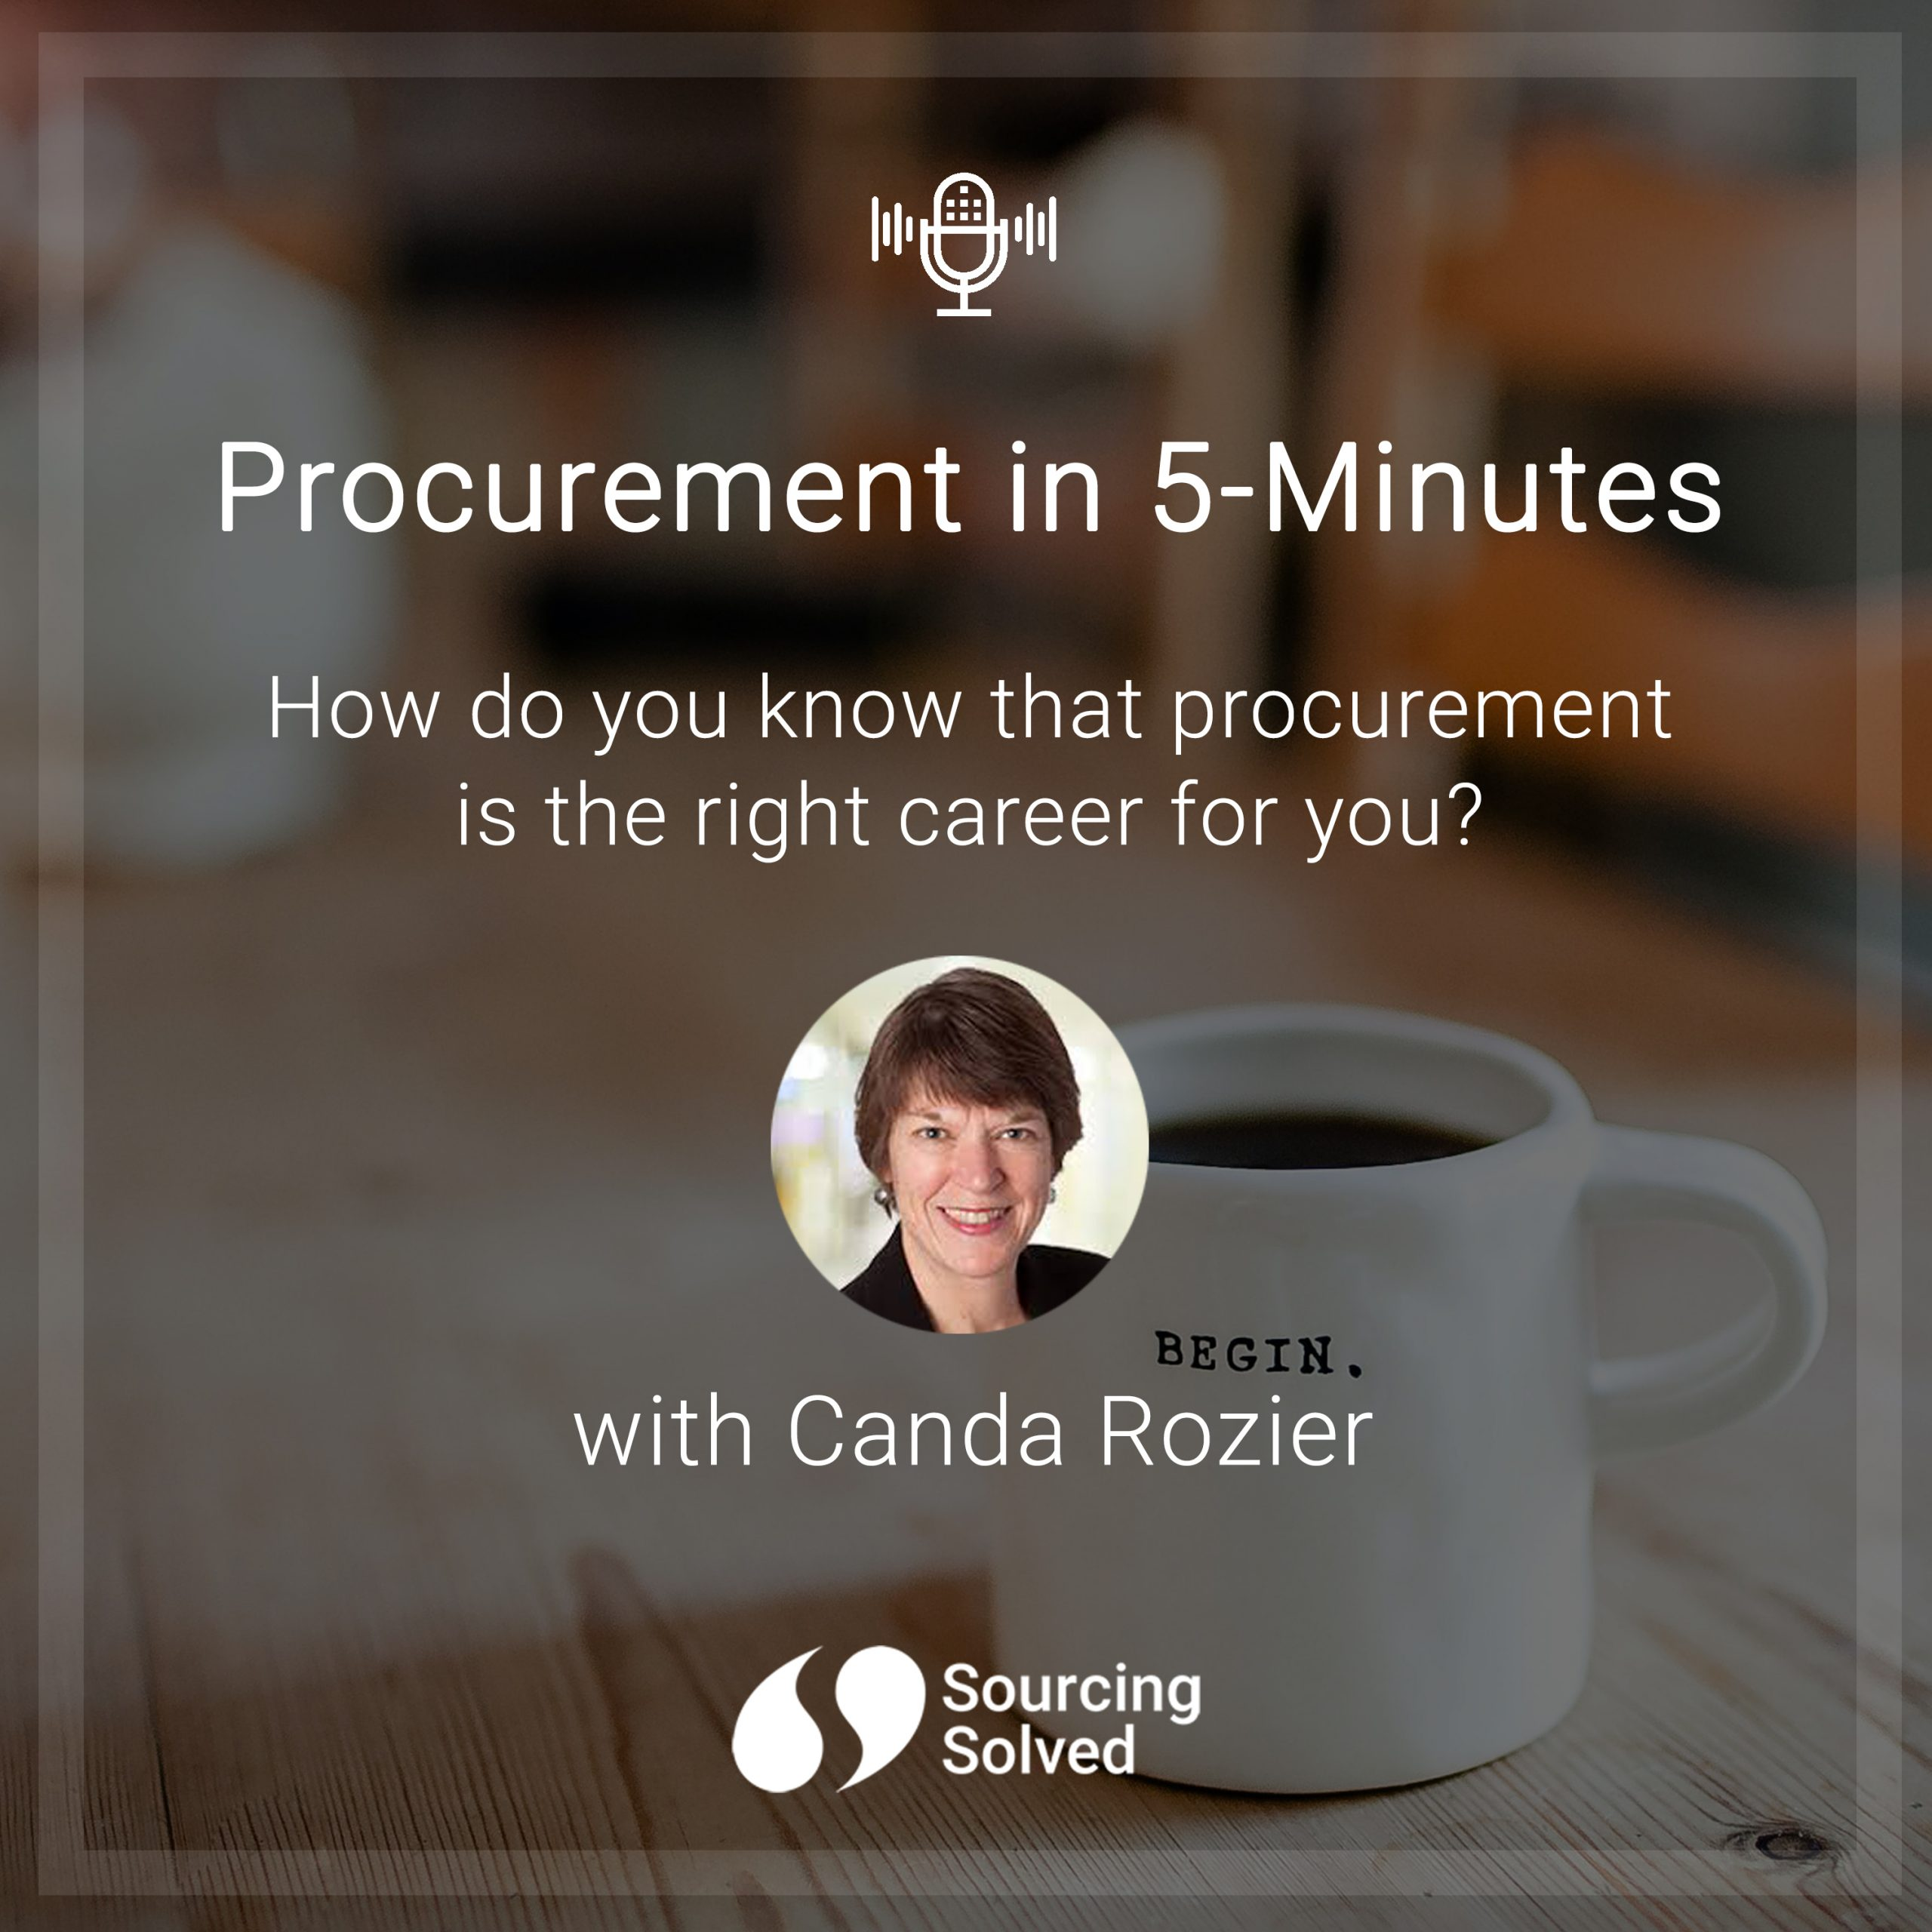 Procurement in 5-Minutes: How do you know that procurement is the right career for you?